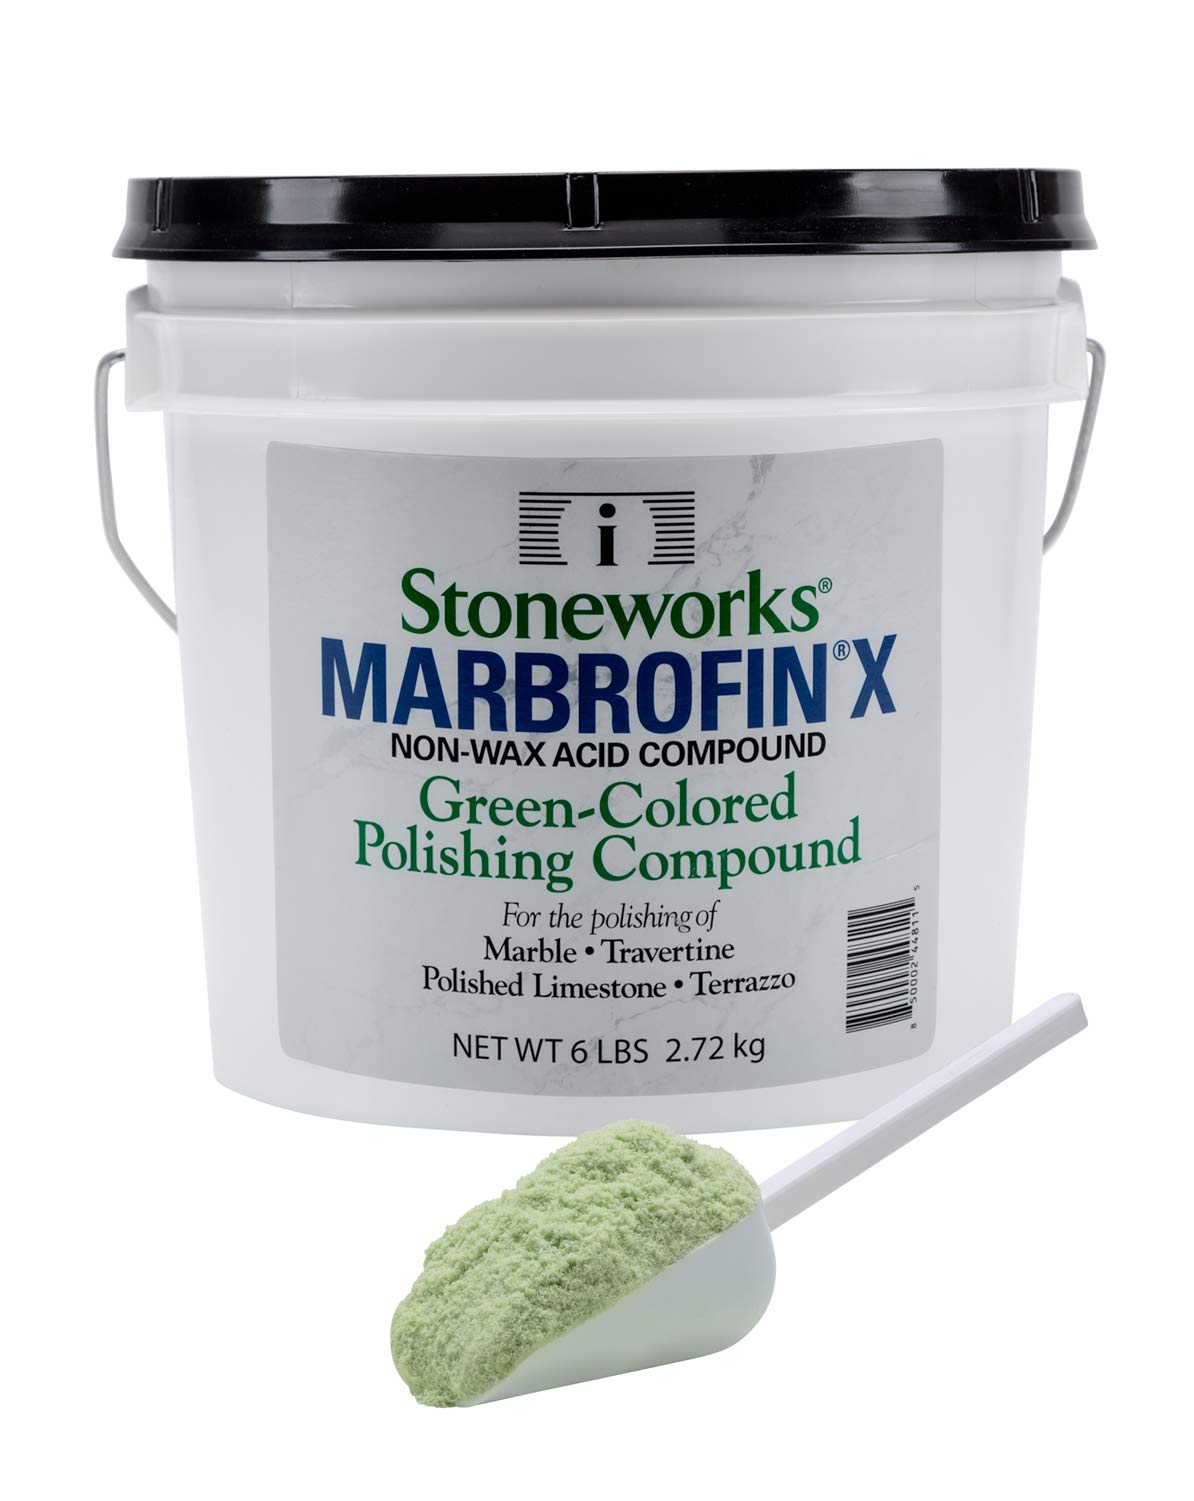 Marbrofin X (6 Lb) Green-Colored Polishing Powder for Marble and Other Natural Stones